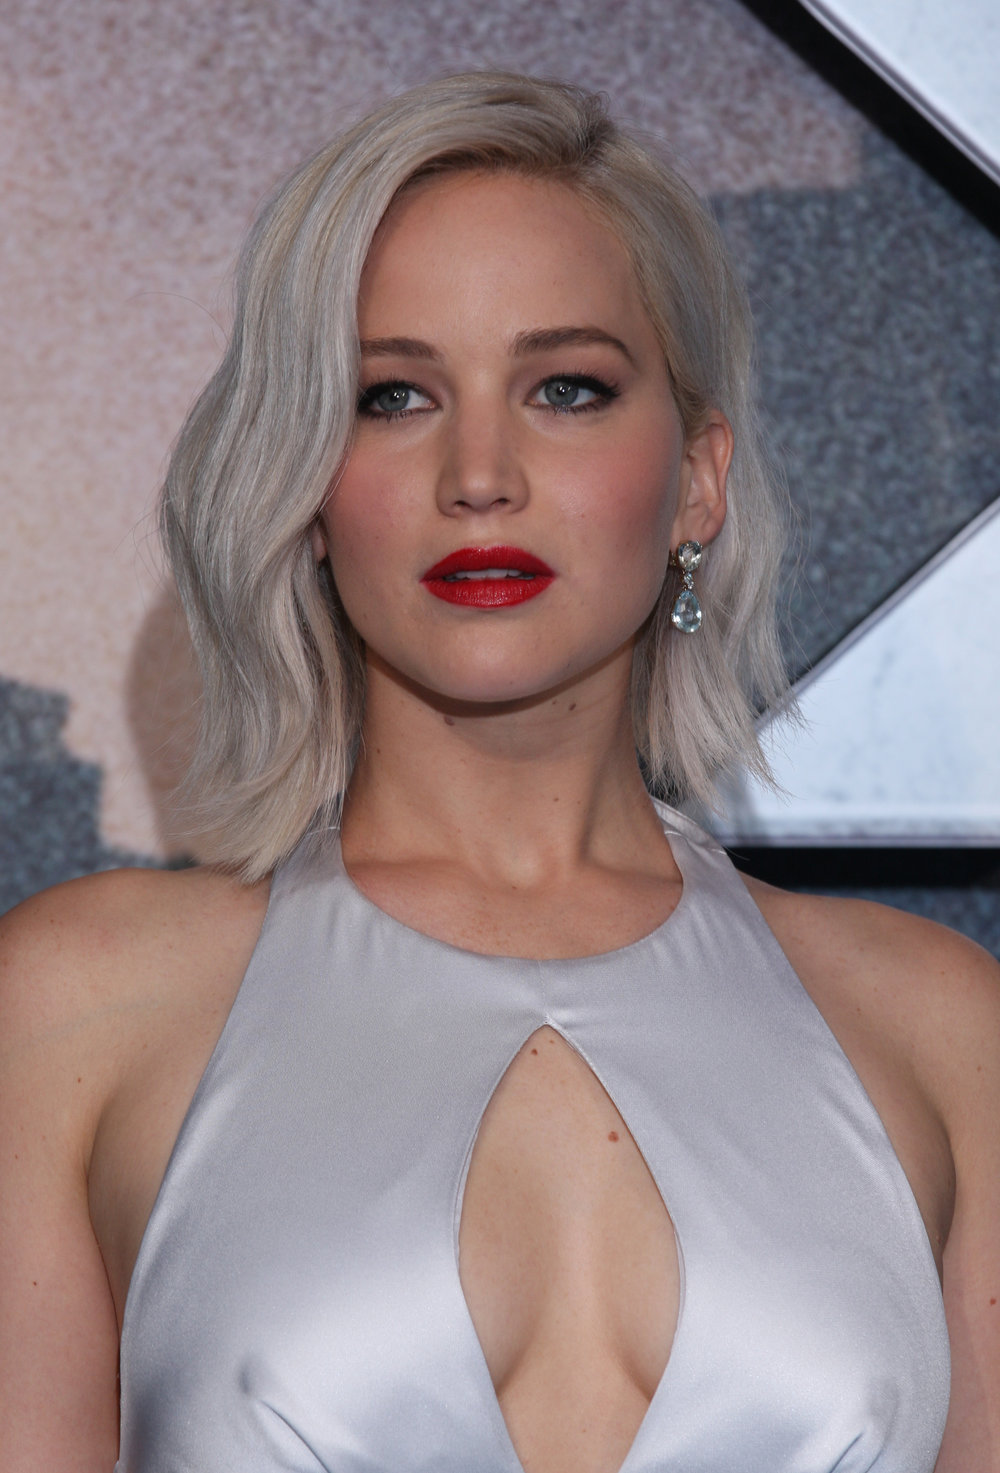 The phrase is said to have been coined by Oscar winner Jennifer Lawrence, who complained about it at the 2014 SAG awards.